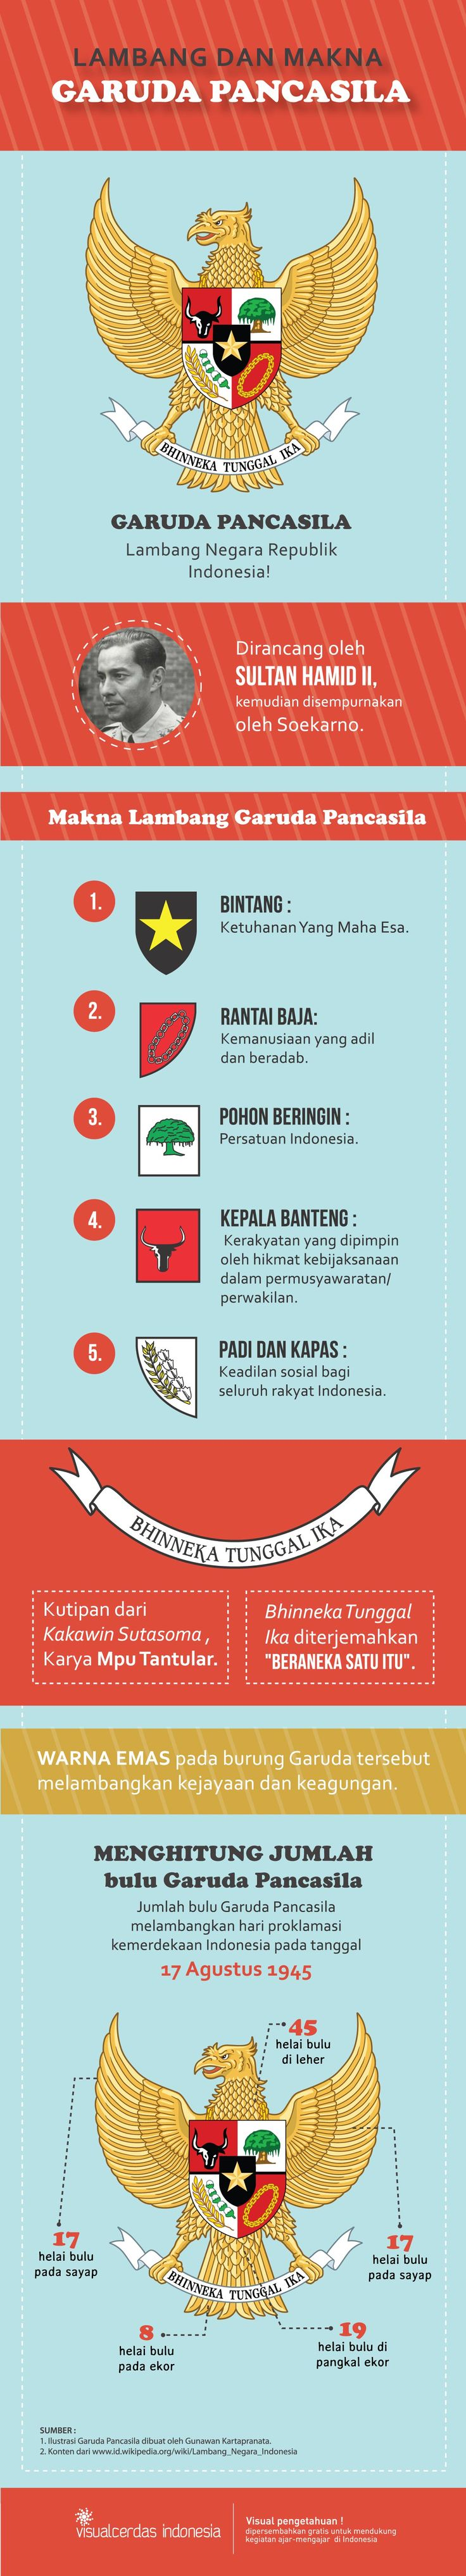 8 best Indonesian Ideologi images on Pinterest | Indonesia ...